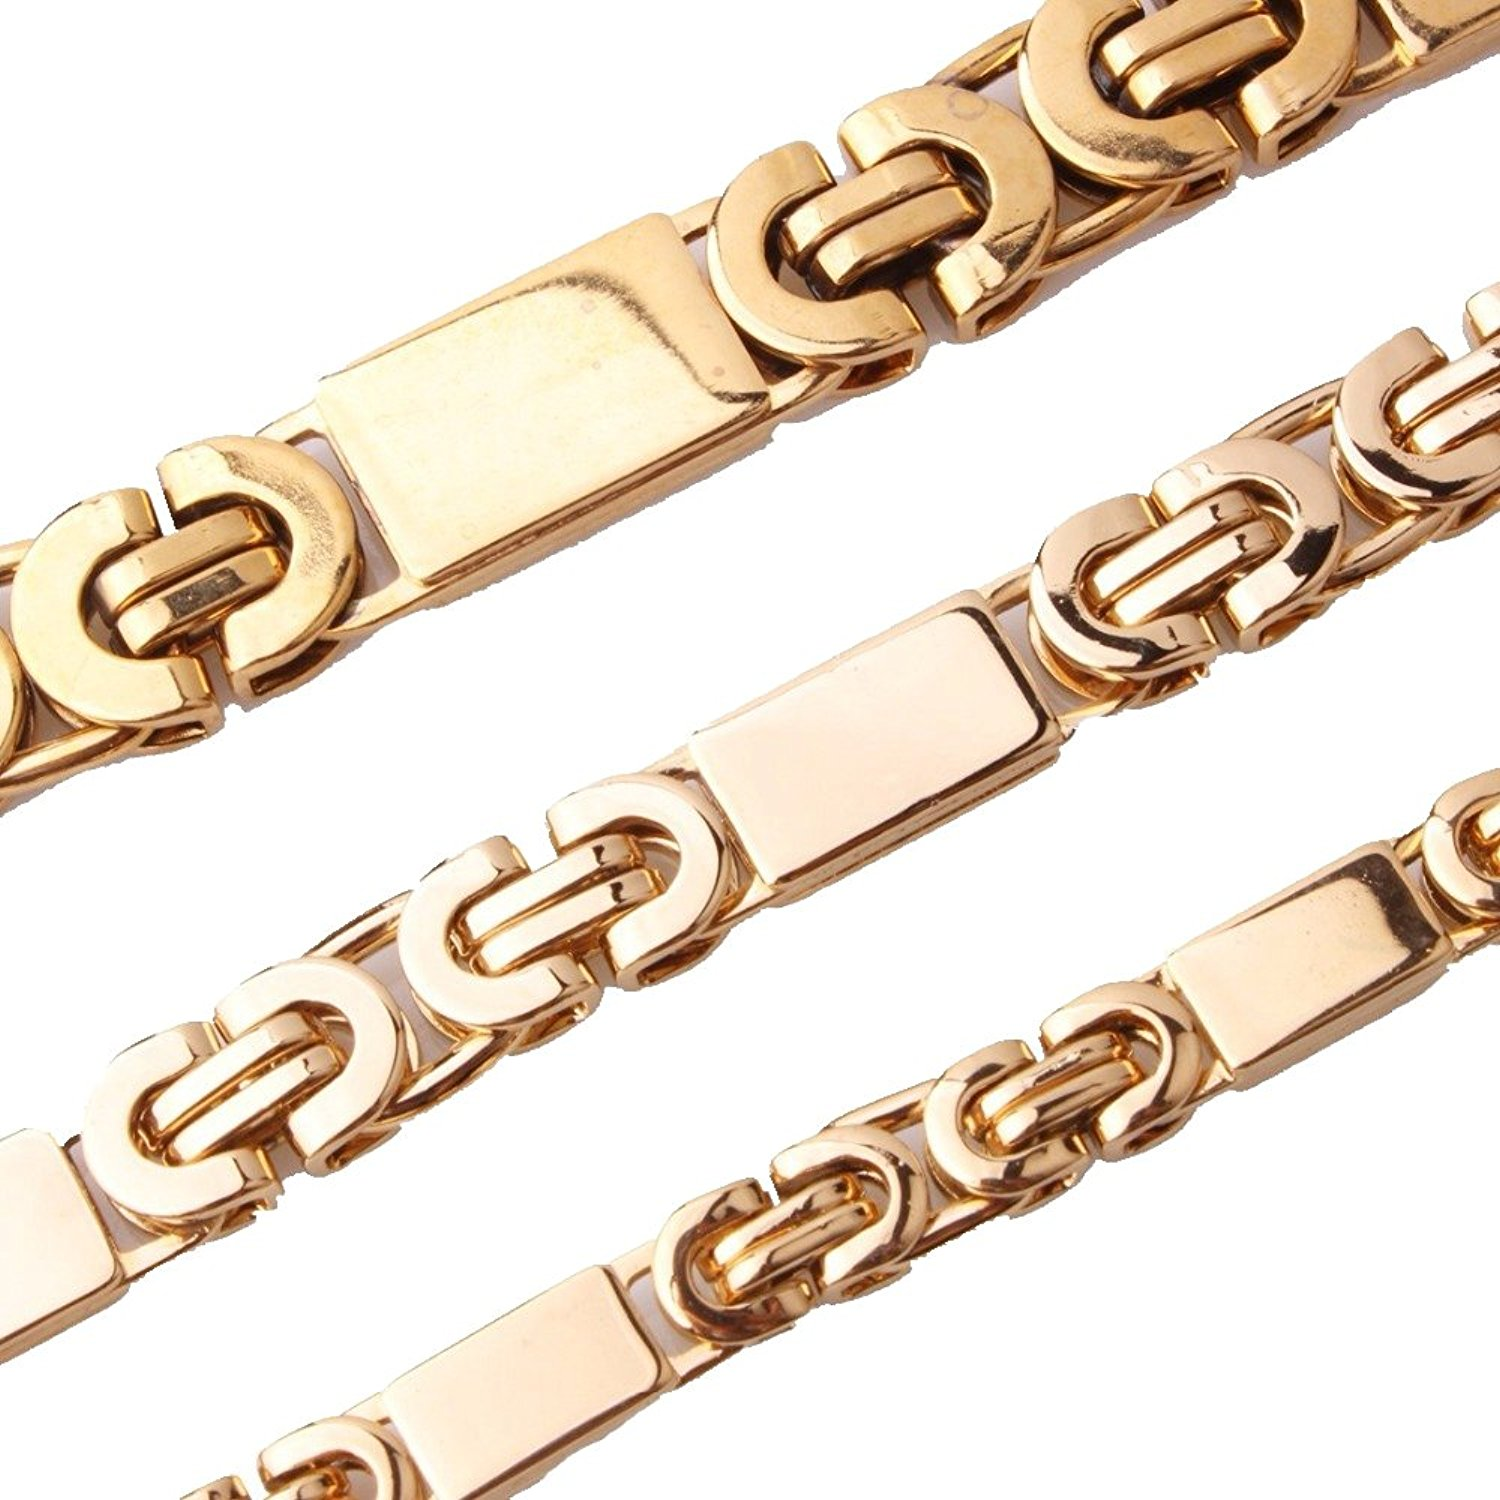 6/8/11mm Wide Flat Gold Tone Byzantine Chain Necklace Cool Men's Stainless Steel Jewelry,16-40""